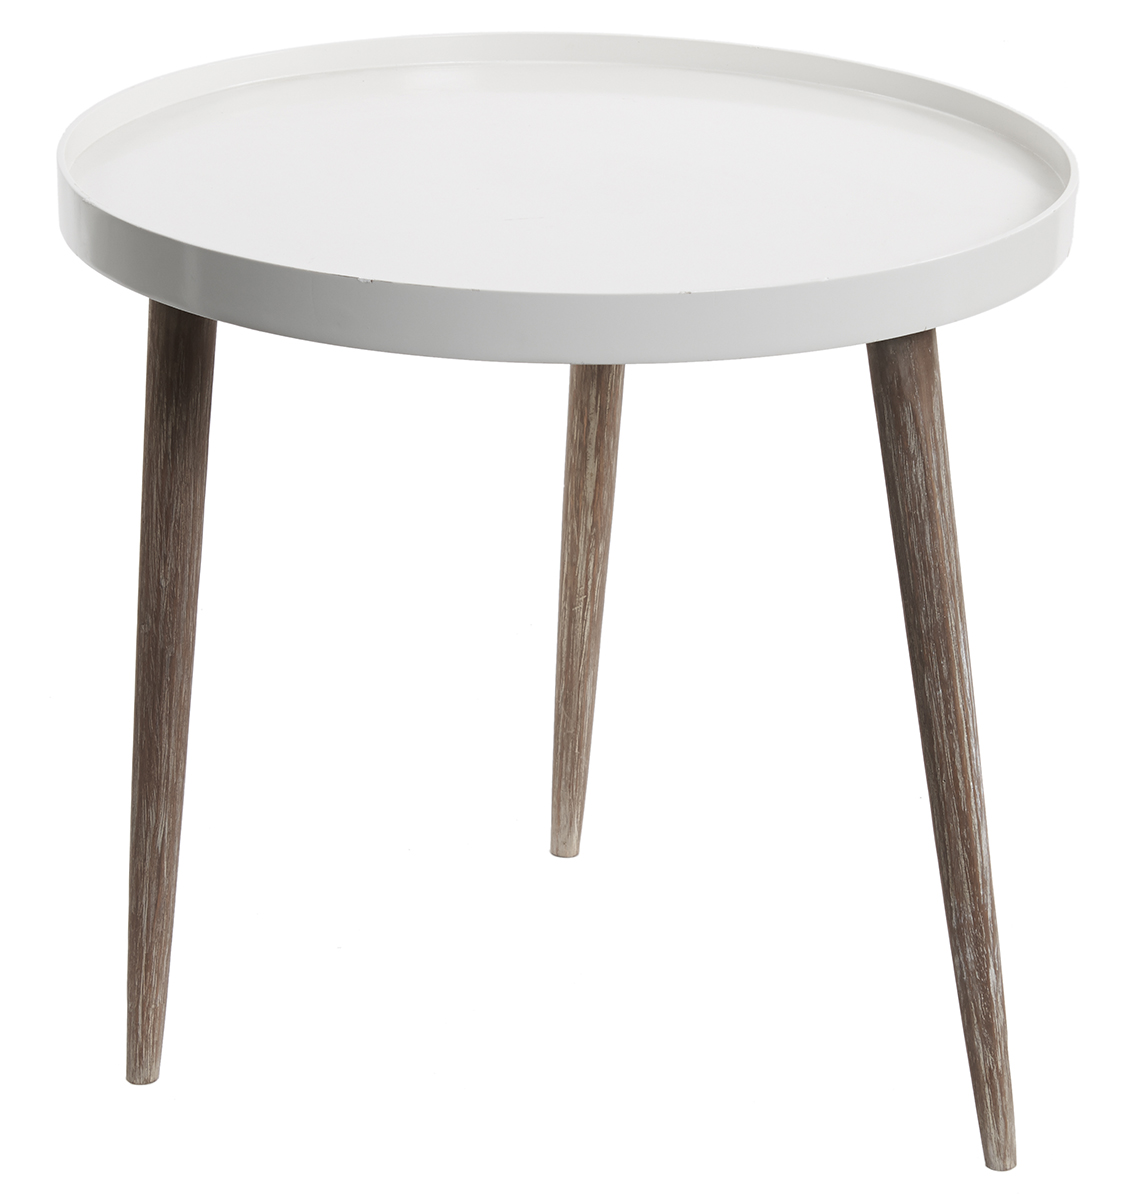 emhome-Tobs-large-round-white-wooden-leg-coffee-side-table-23234